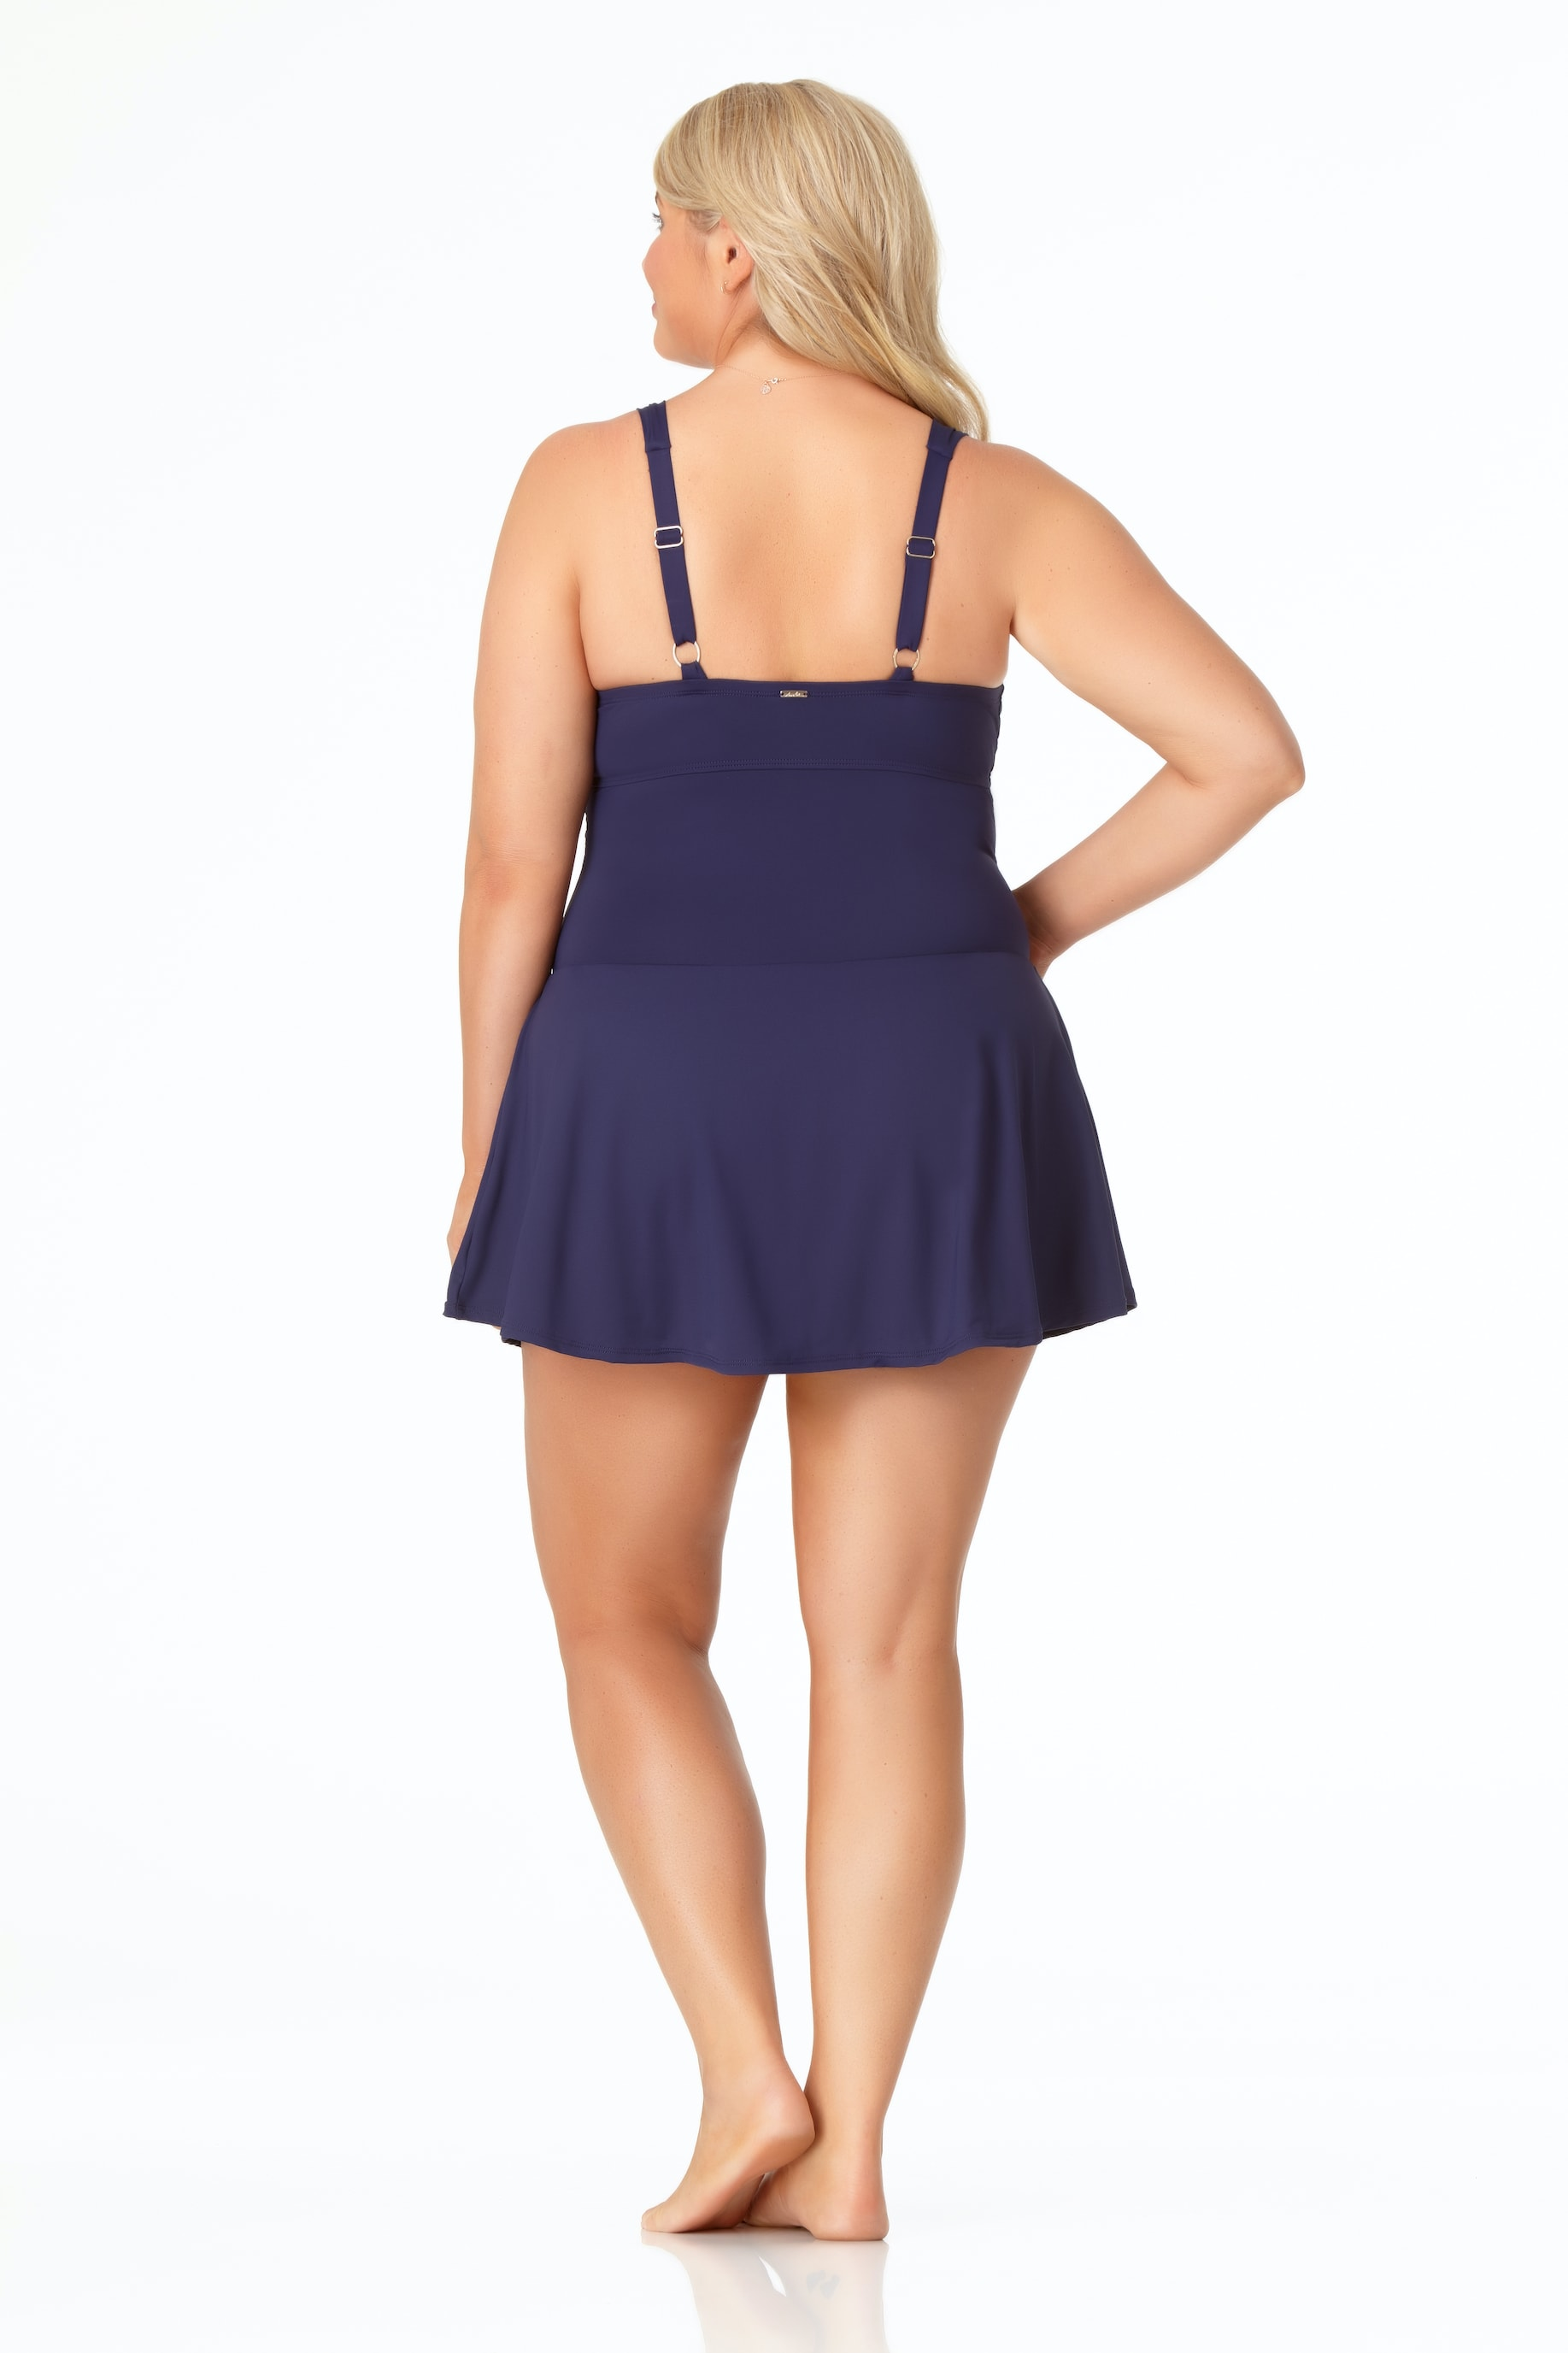 Anne Cole® Live in Color Swimdress One Piece Swimsuit - Navy - Back